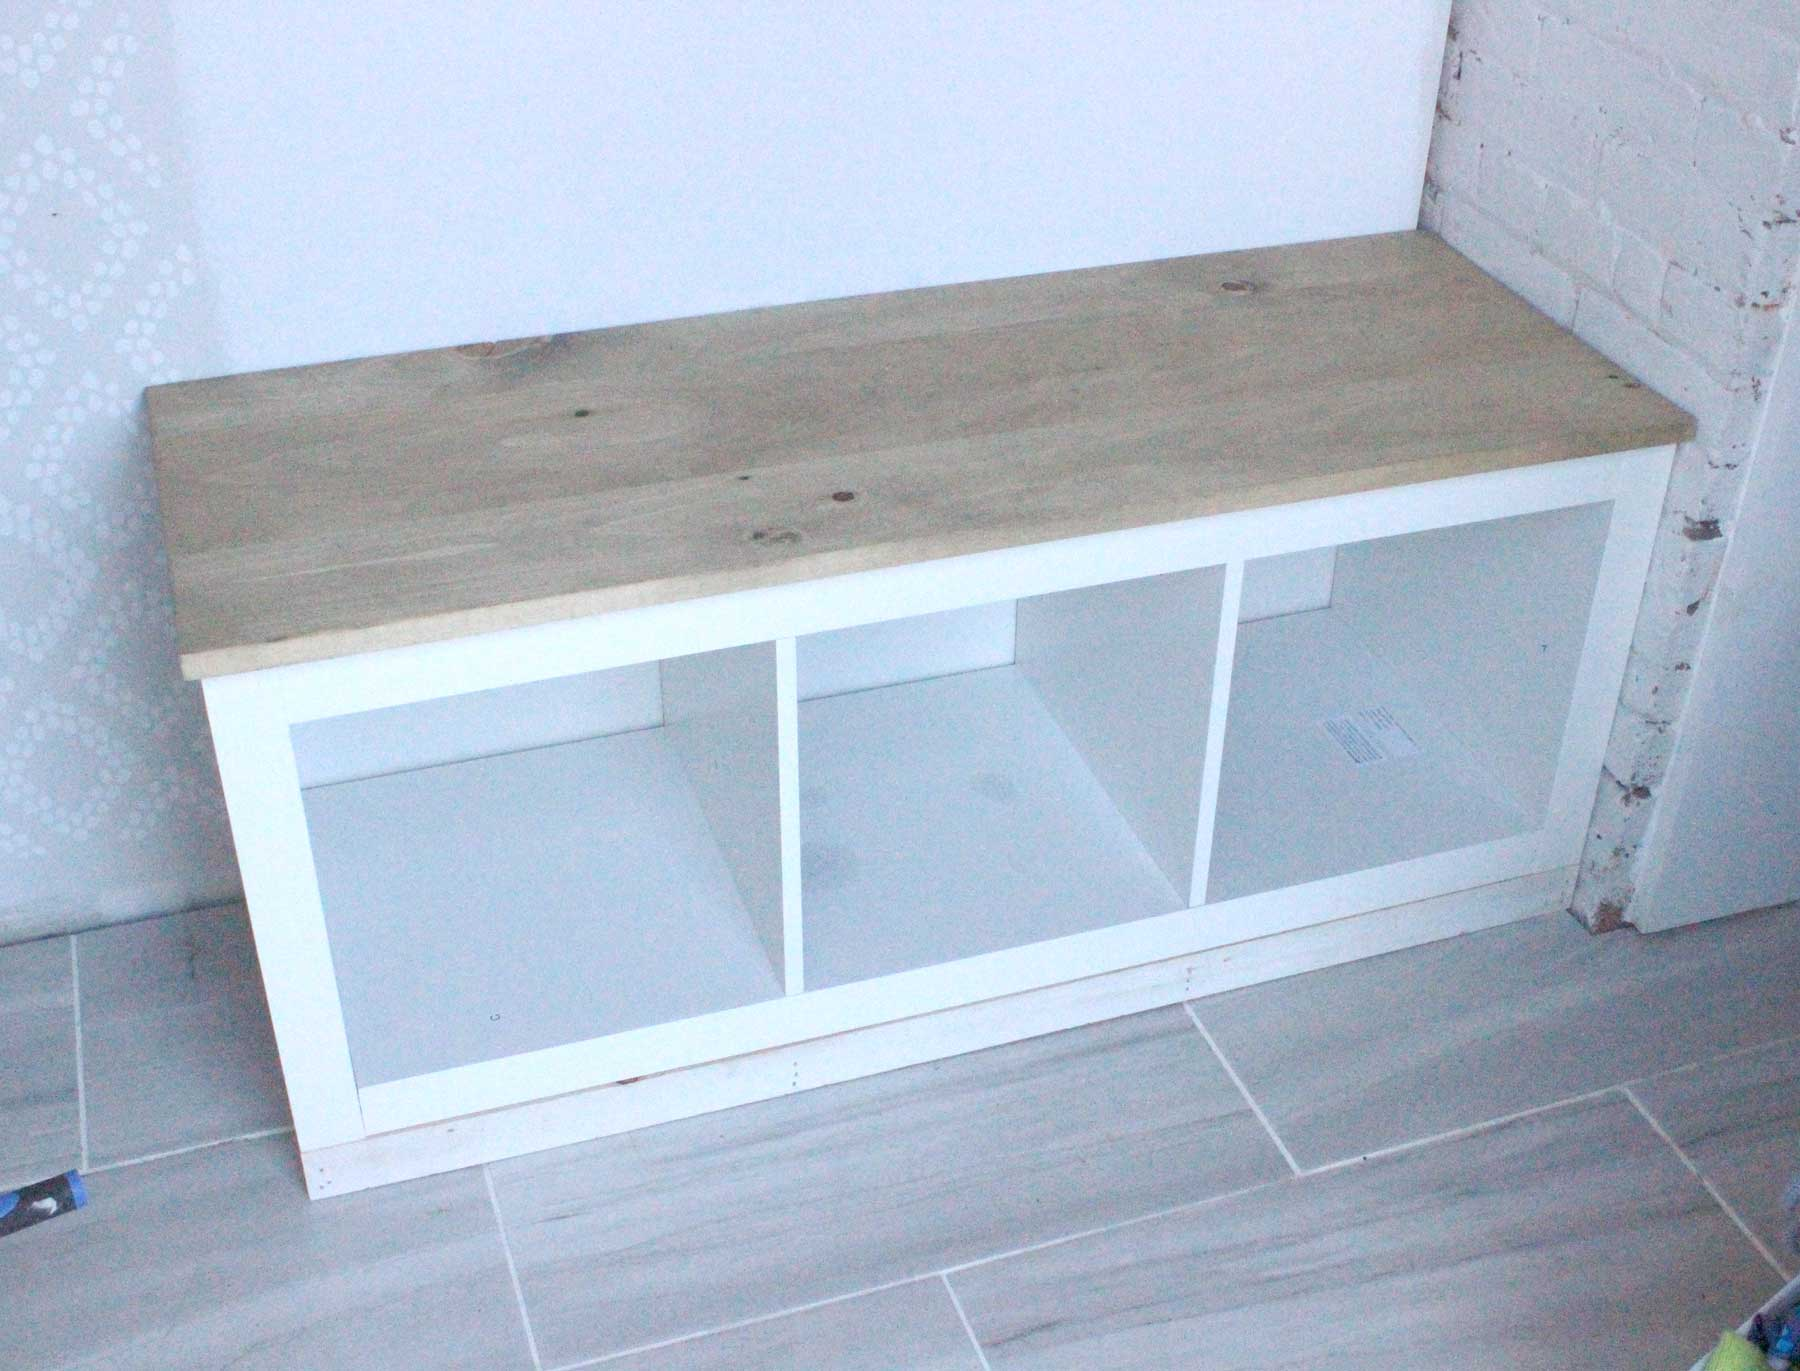 diy-mudroom-project-custom-bench-1